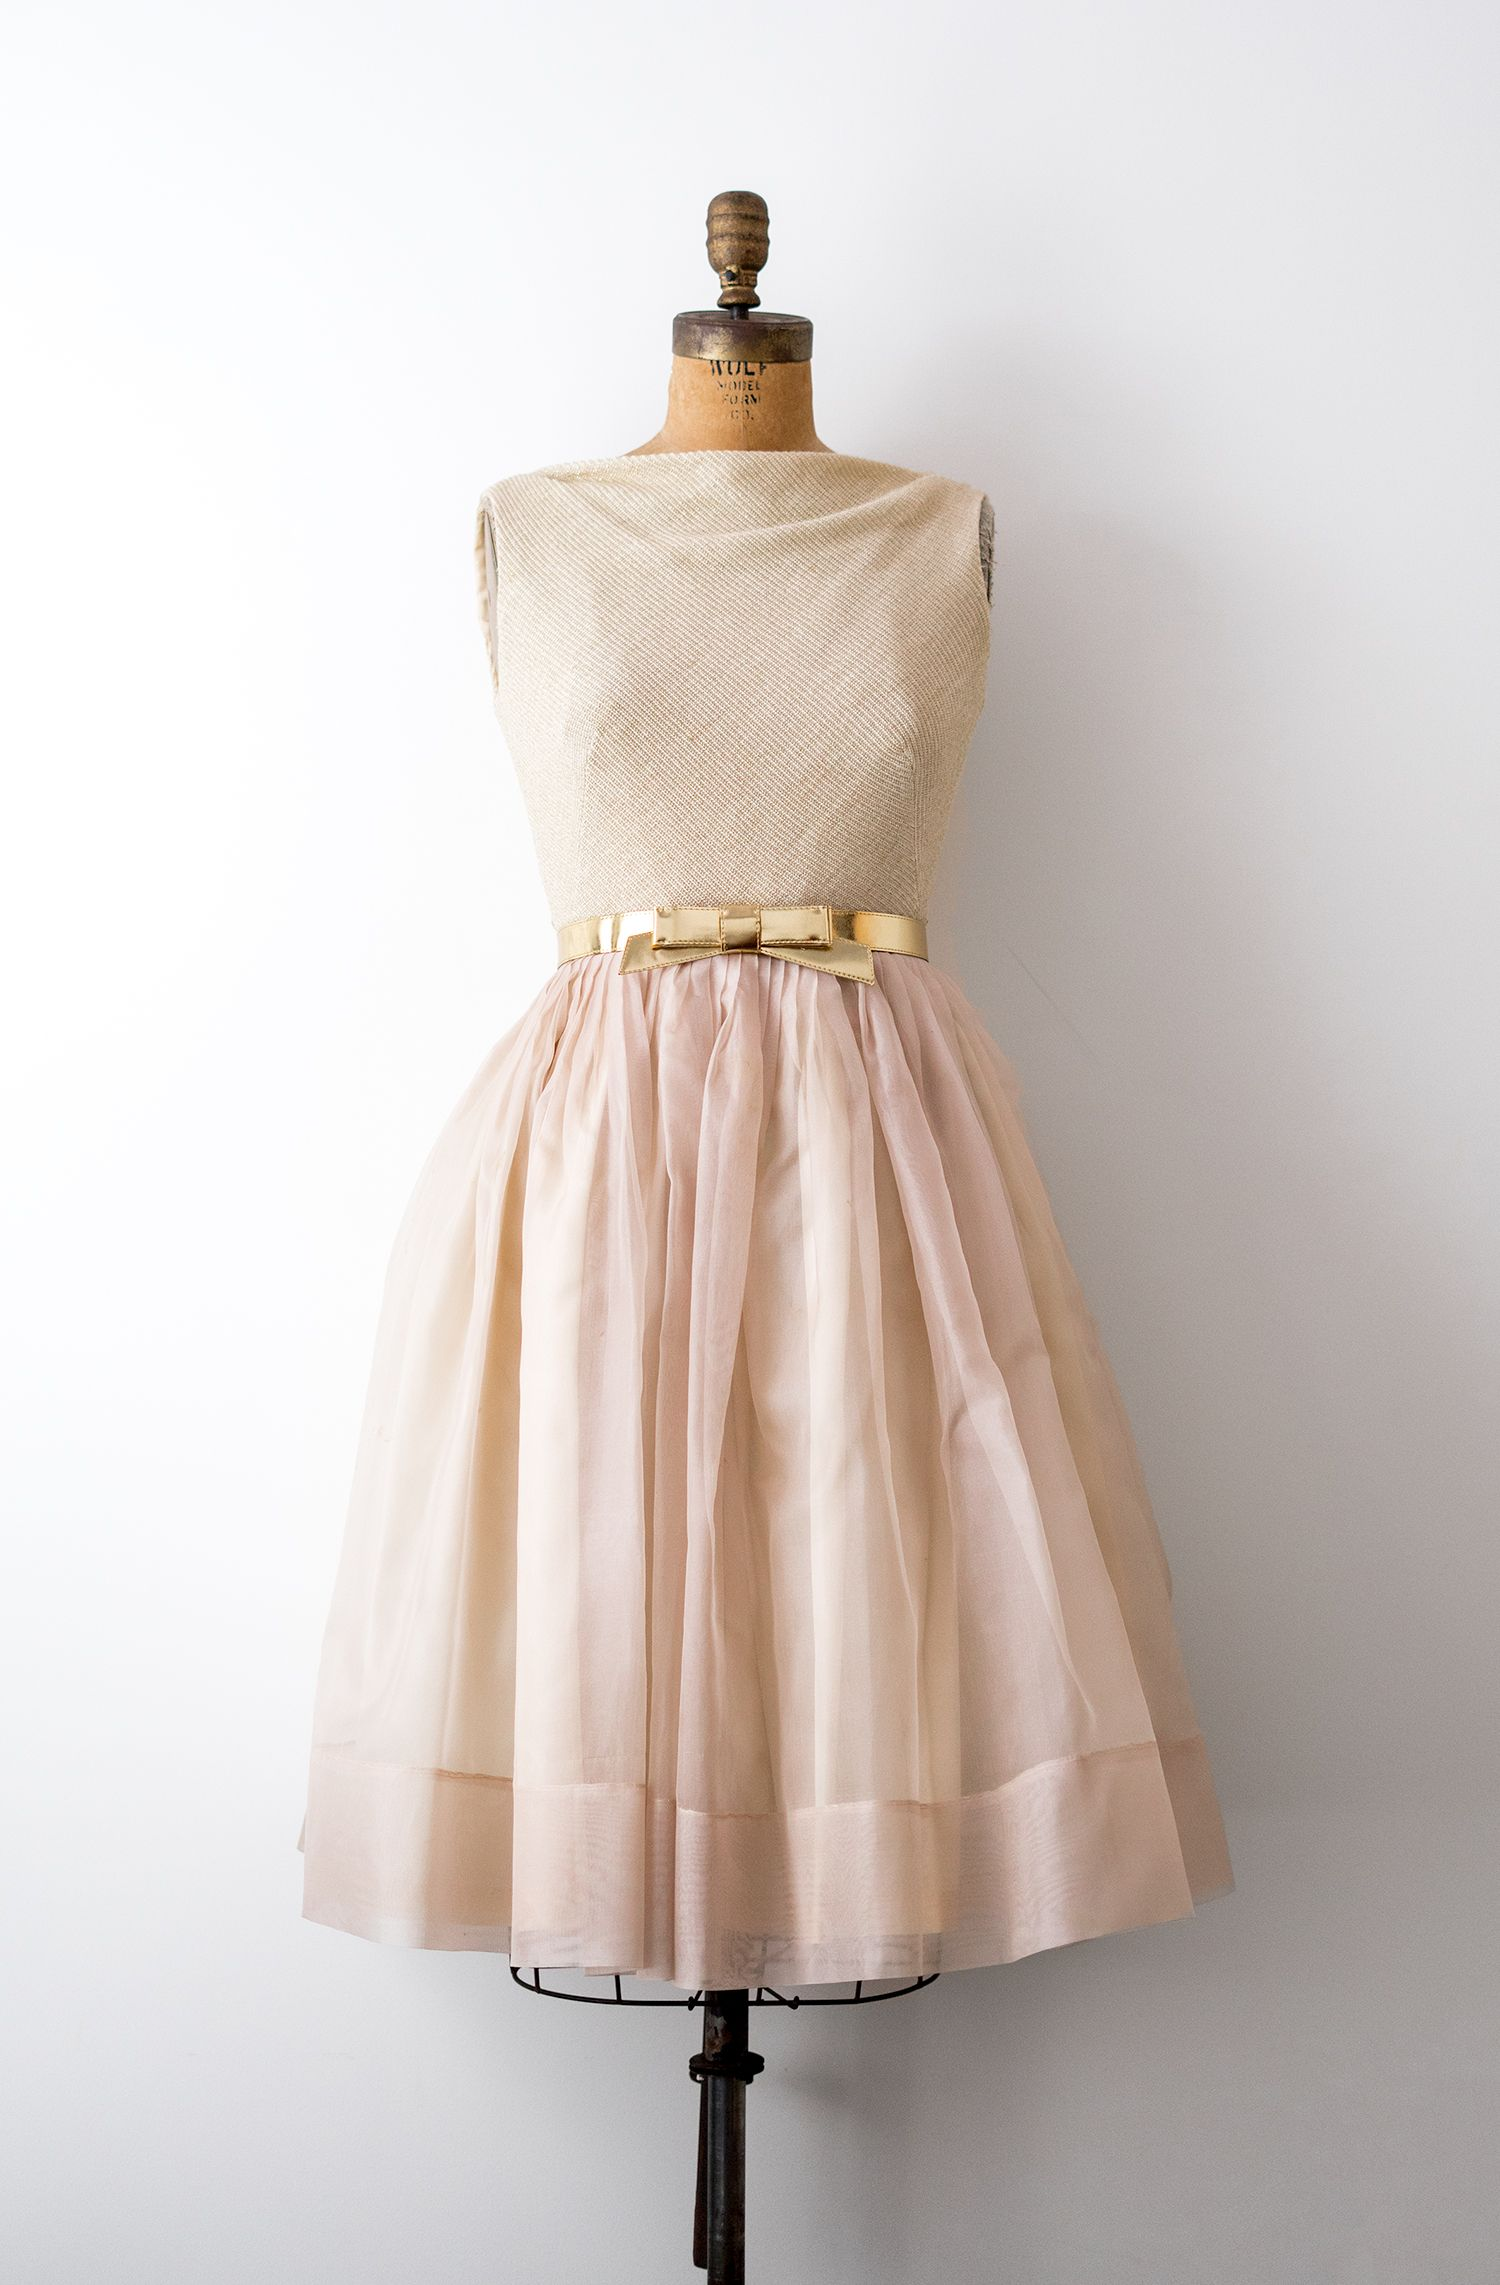 Vintage 1950 S Metallic Gold And Pink Champagne Dress In Wool Tulle And Organza By Heirloomen On Etsy Vintage Short Dress Champagne Pink Dress Dresses [ 2285 x 1500 Pixel ]